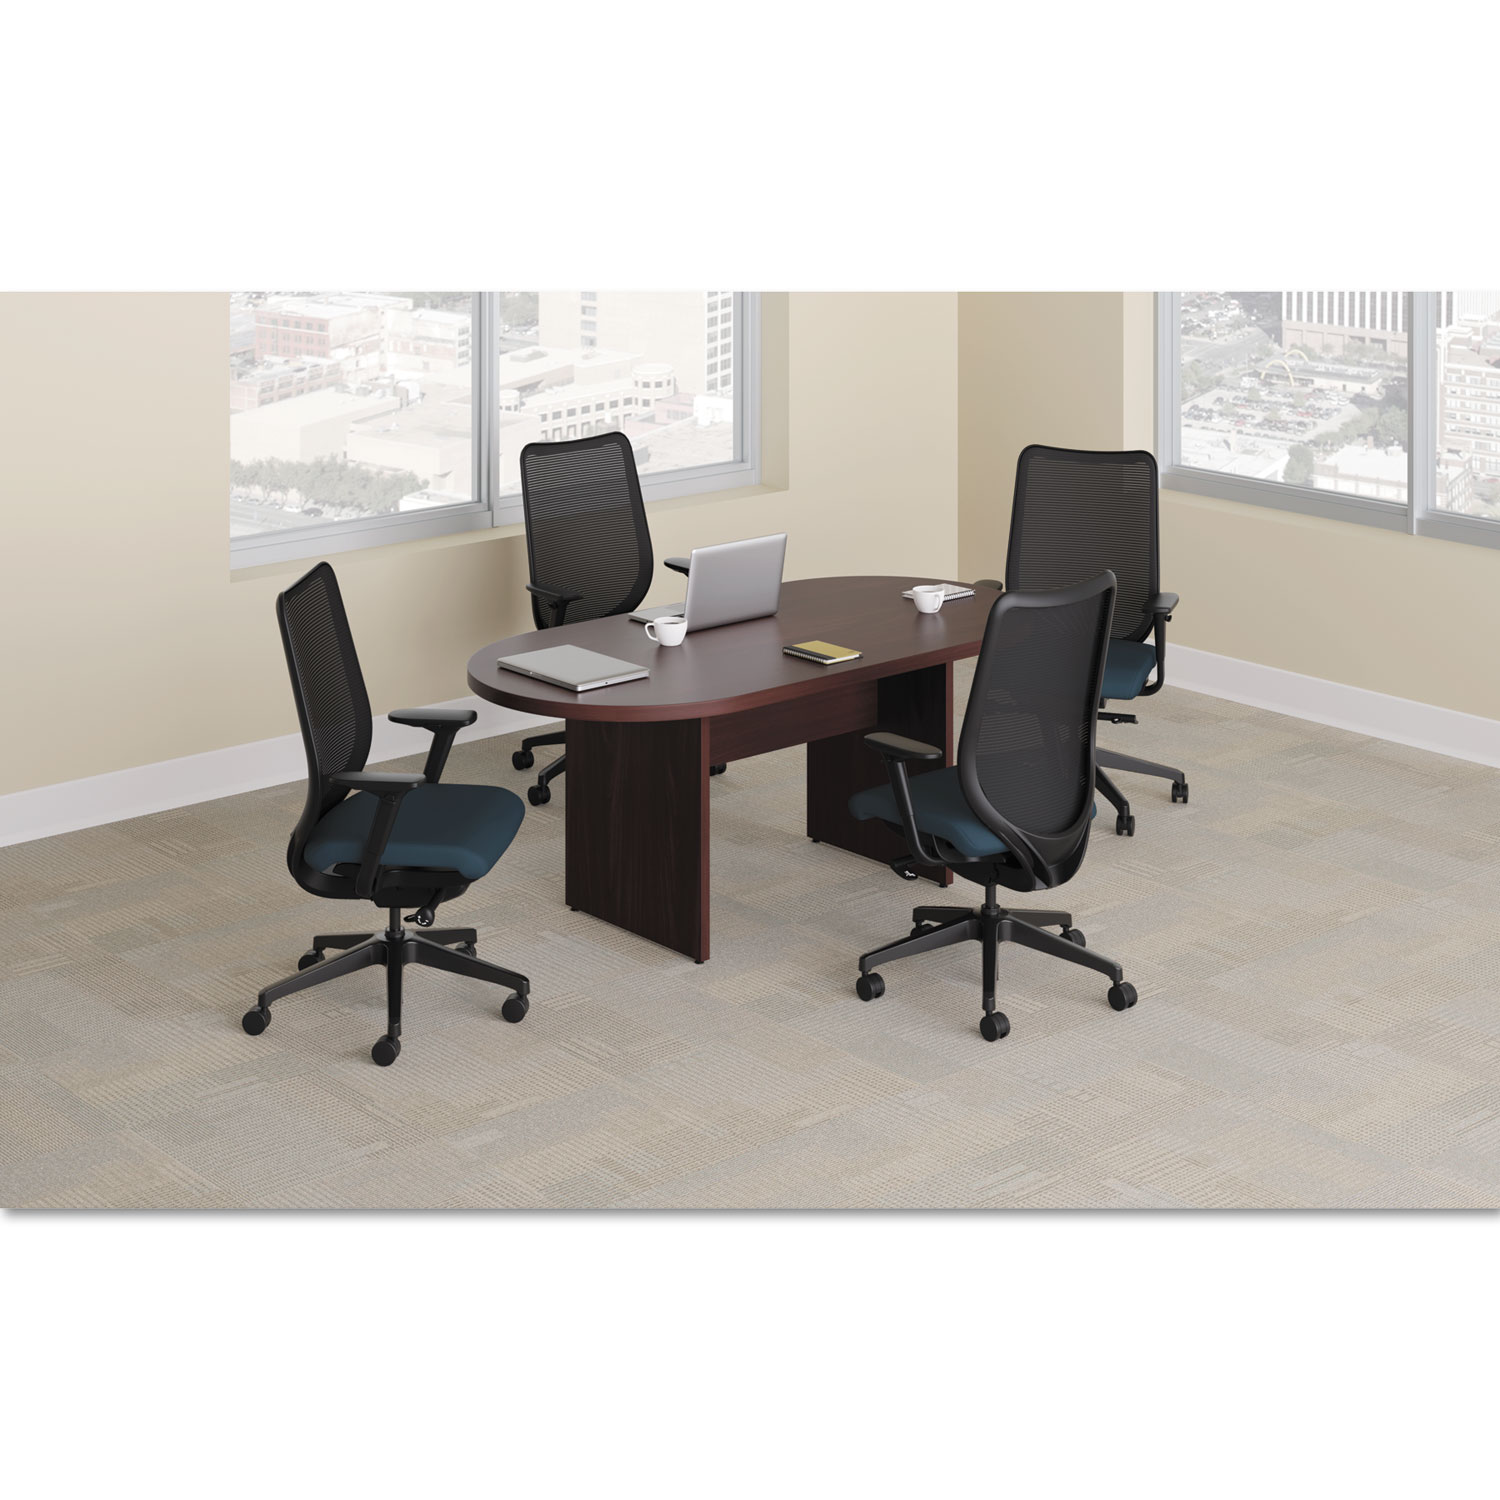 Get Preside Racetrack Conference Table Top And Other Office Tables - Hon racetrack conference table